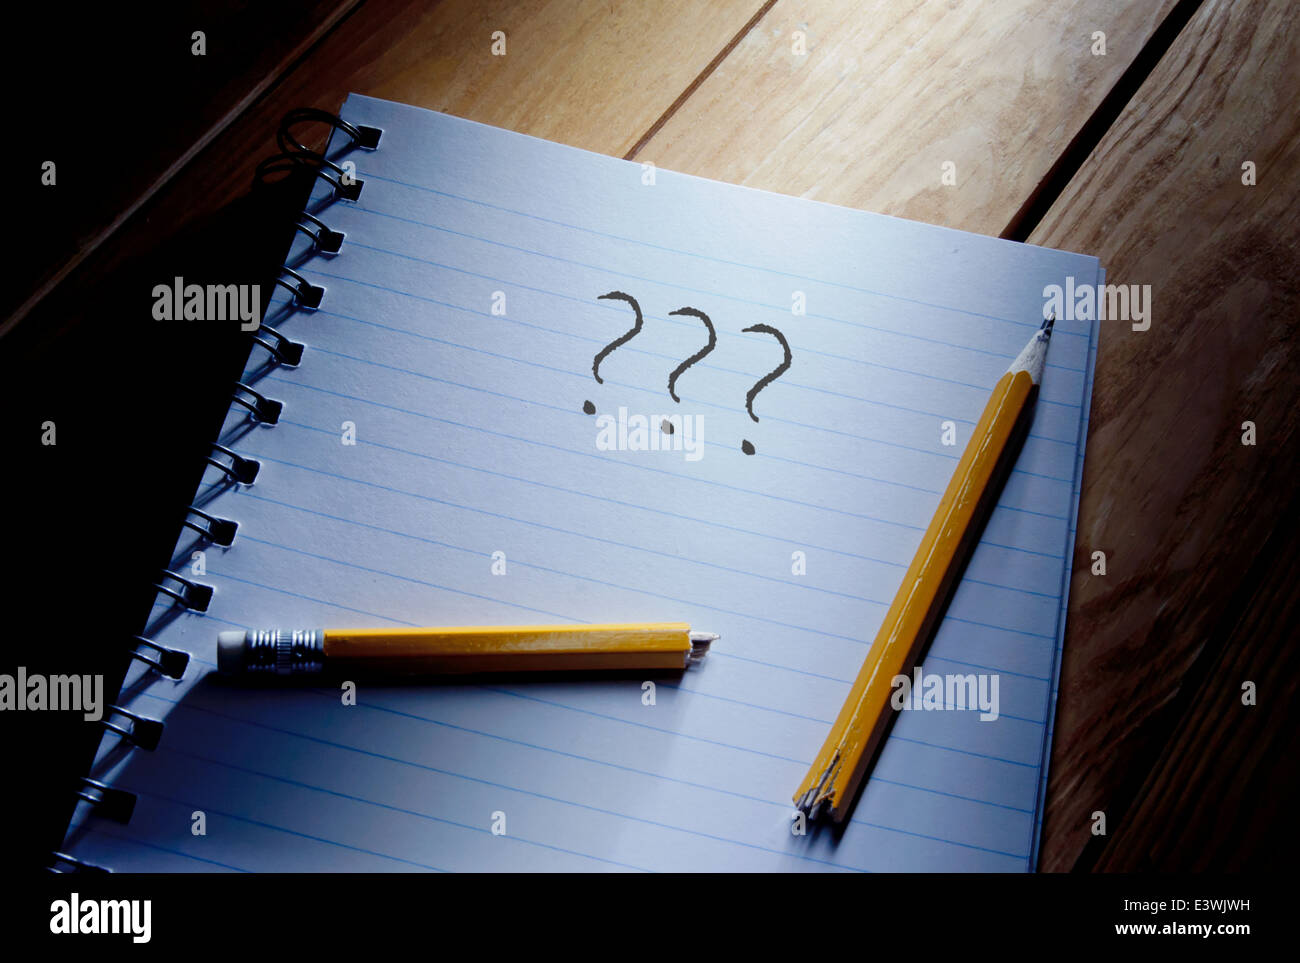 Writers block - Stock Image